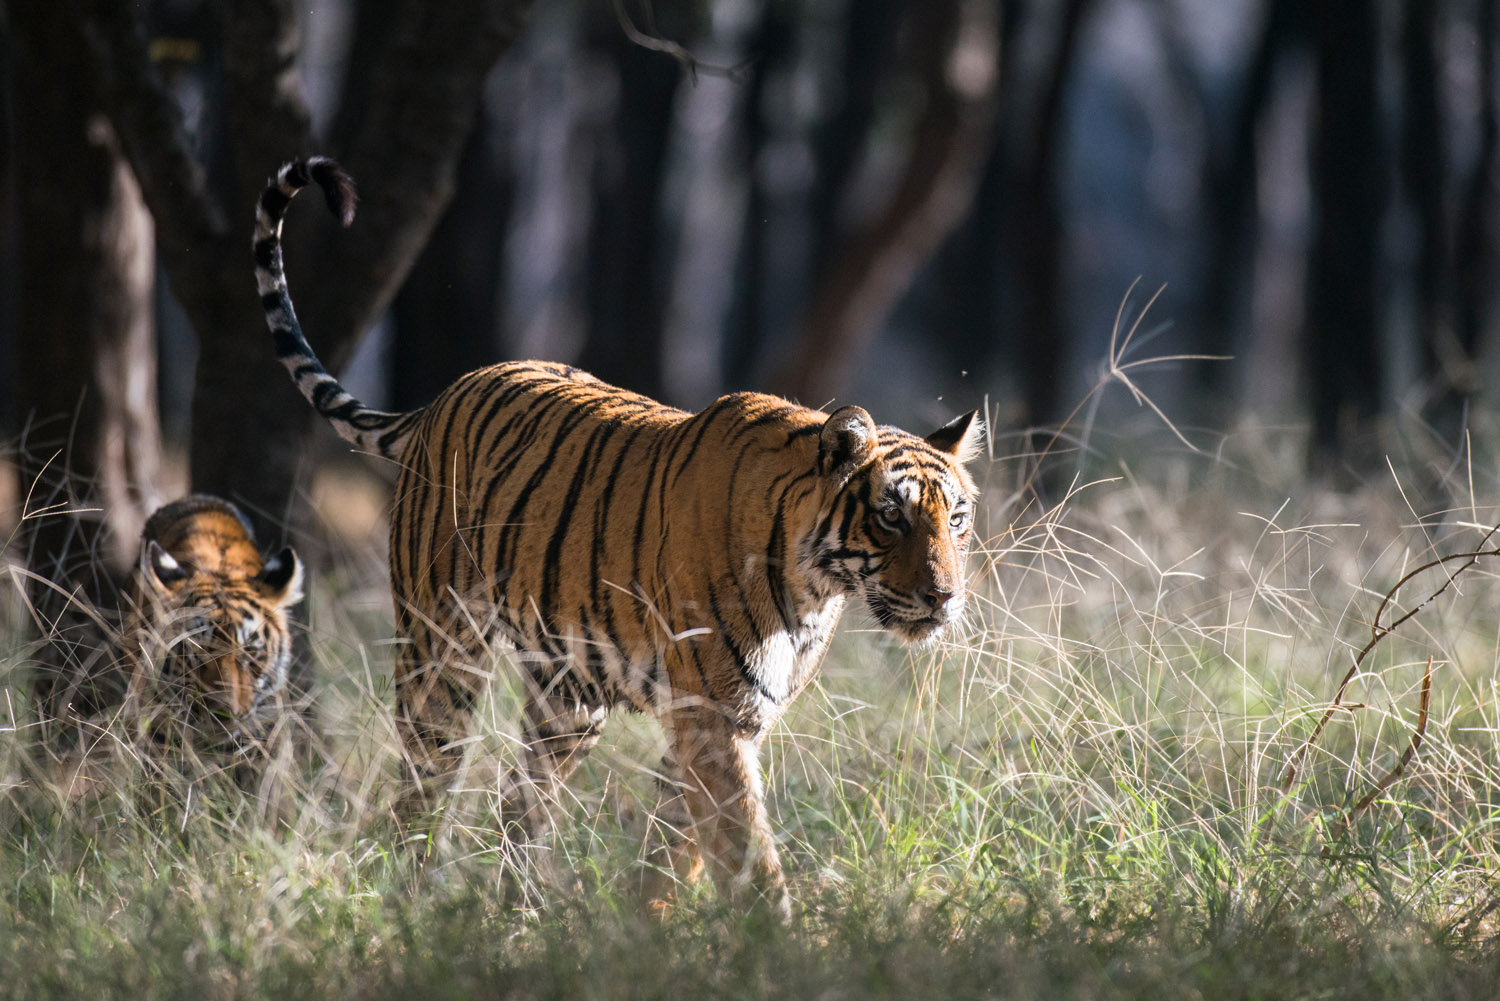 Bengal tiger mother on the move with cub, Ranthambhore National Park, Rajasthan, India